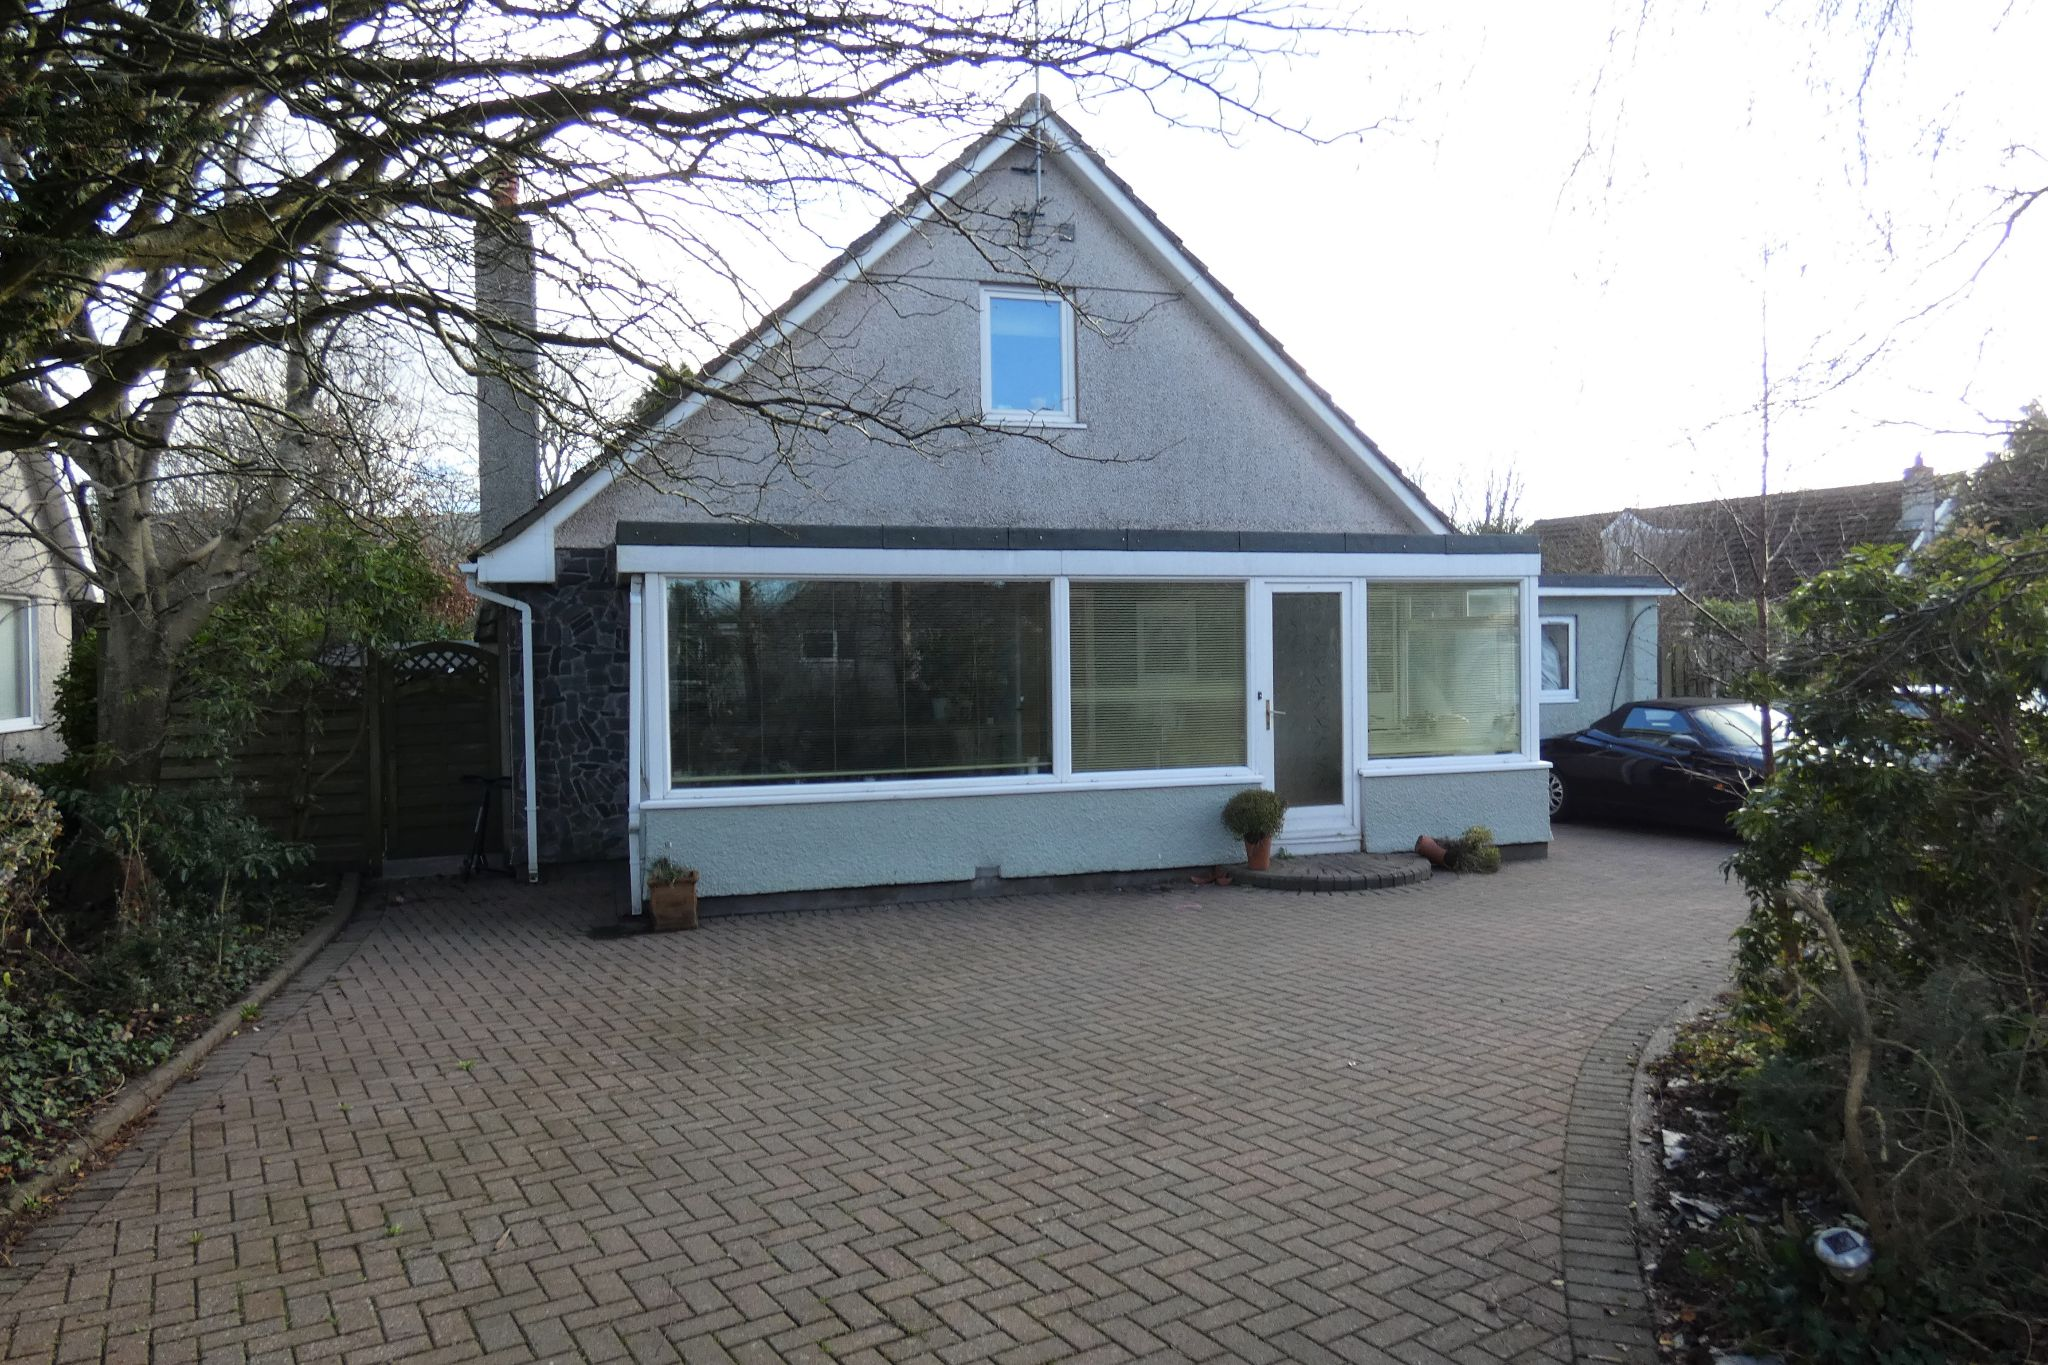 3 bedroom detached bungalow For Sale in St Johns - Photograph 1